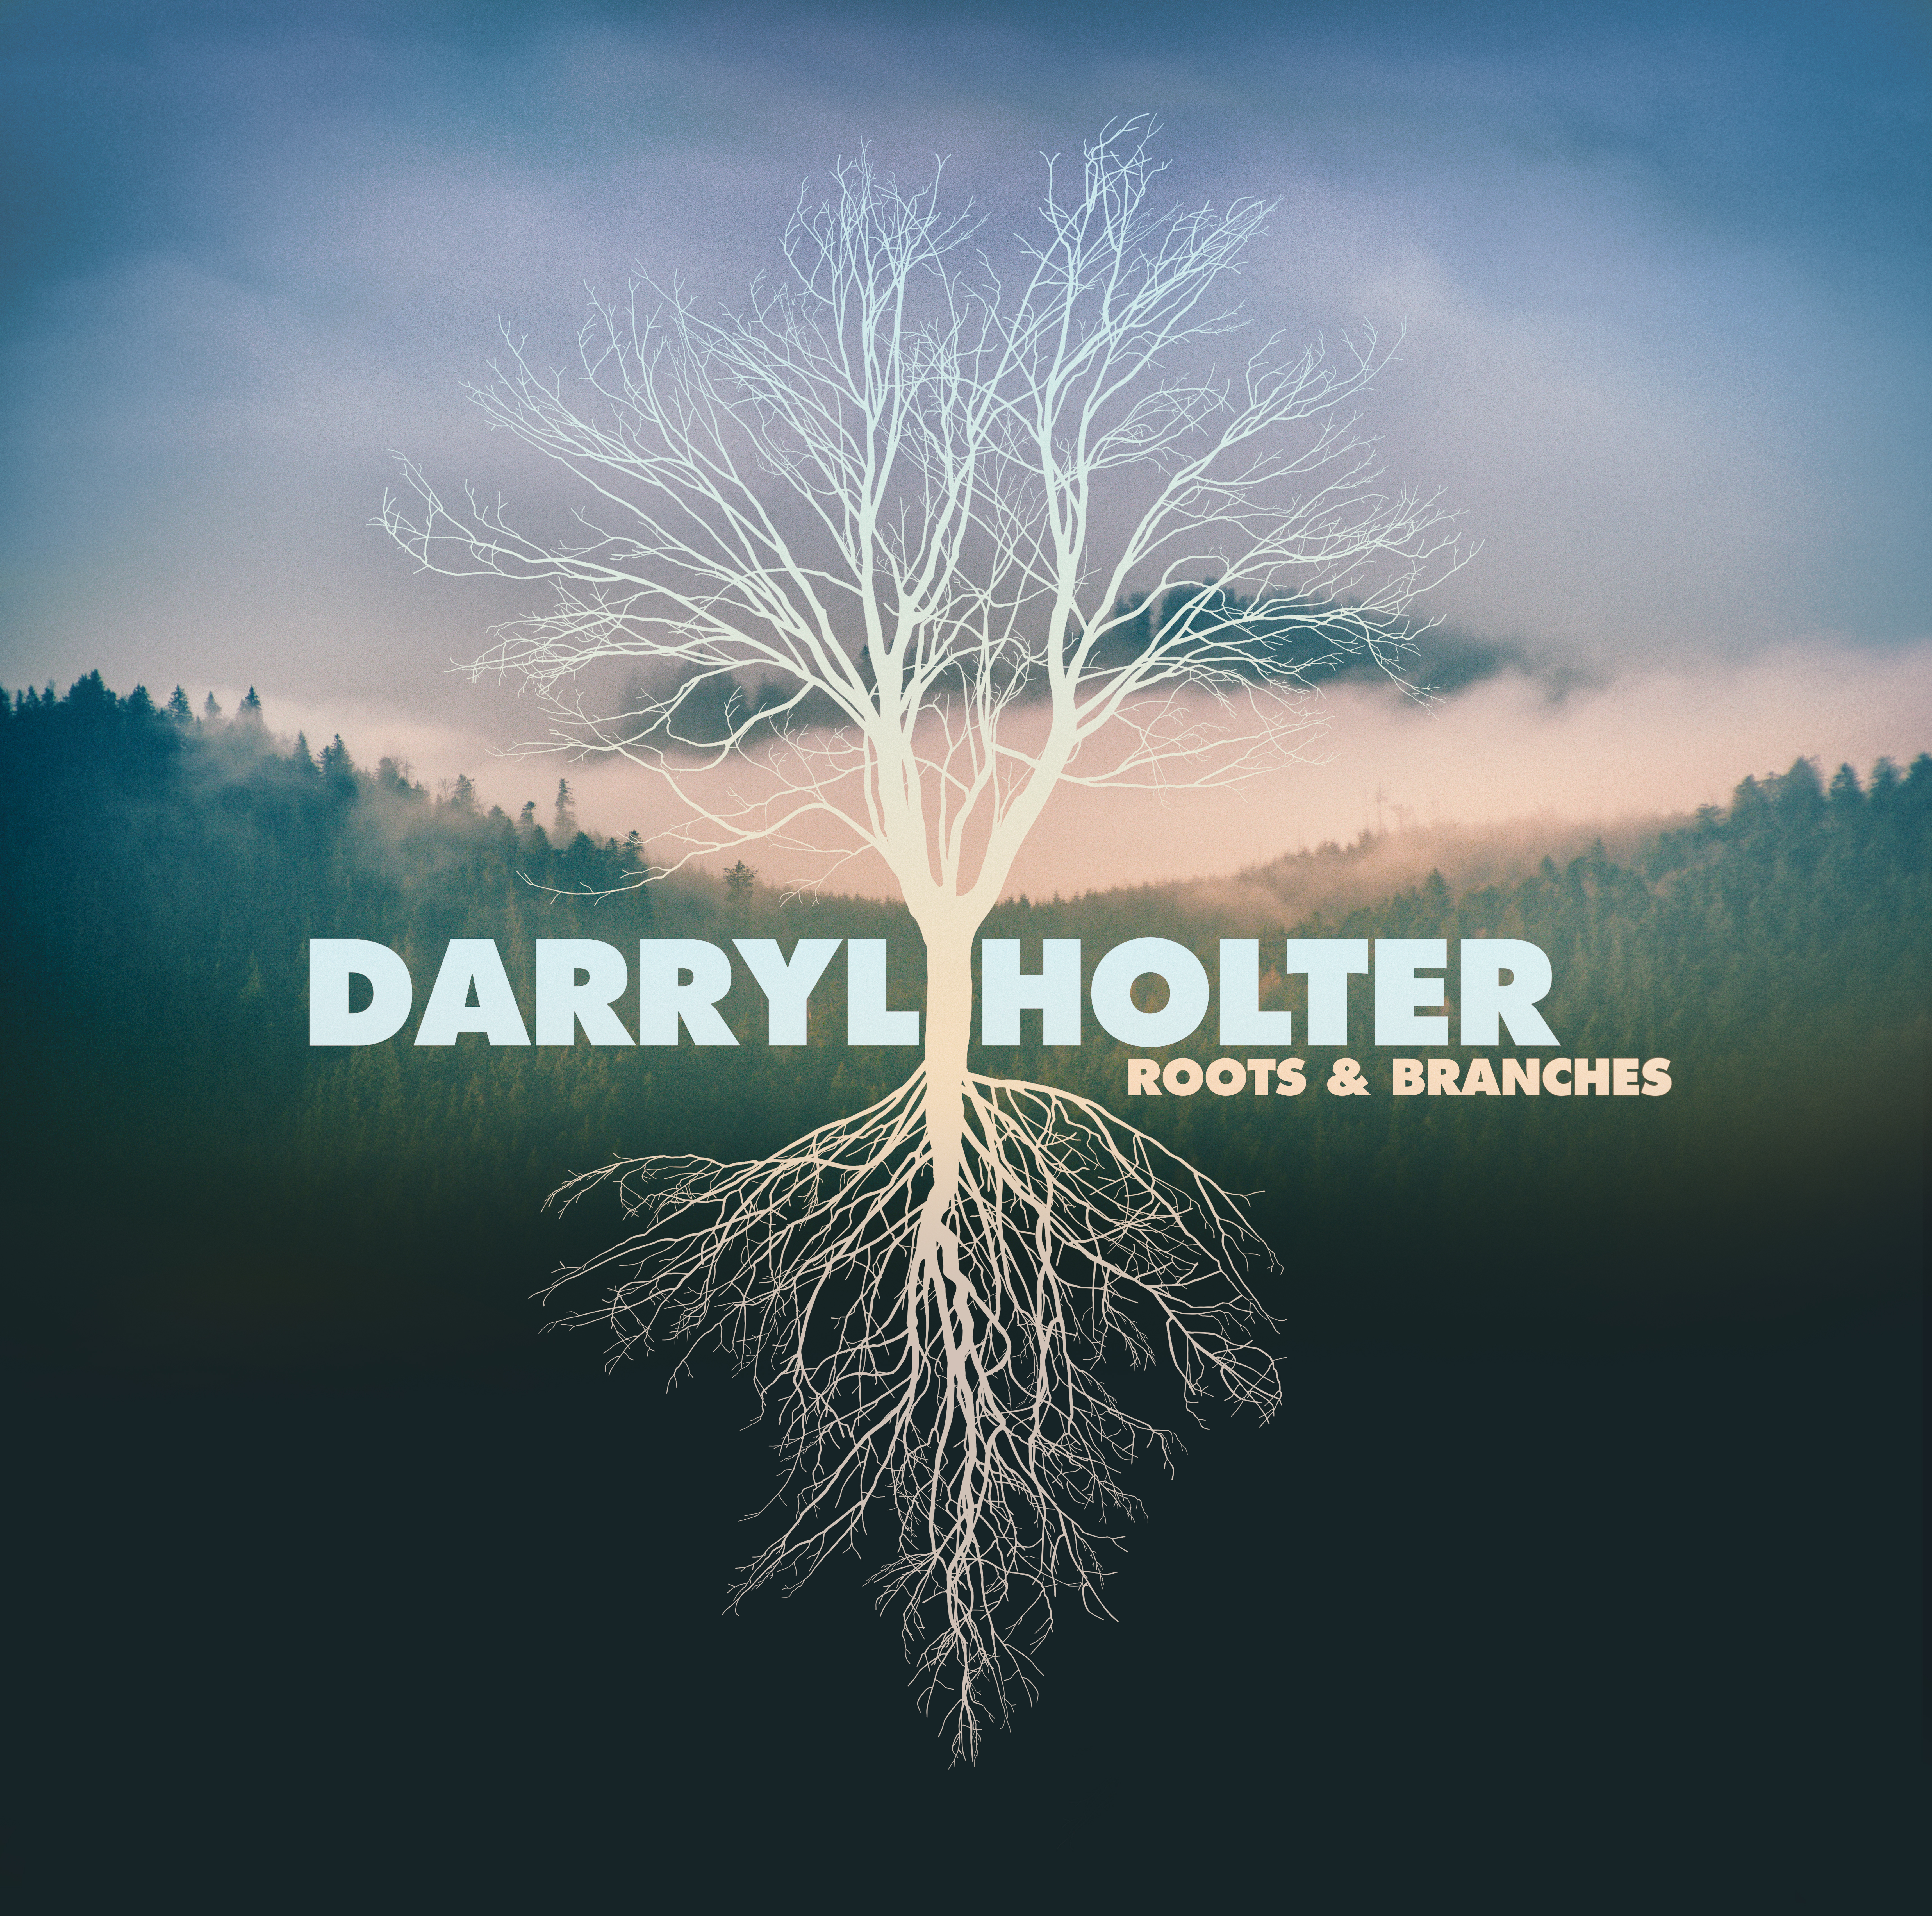 Darryl Holter Roots & Branches